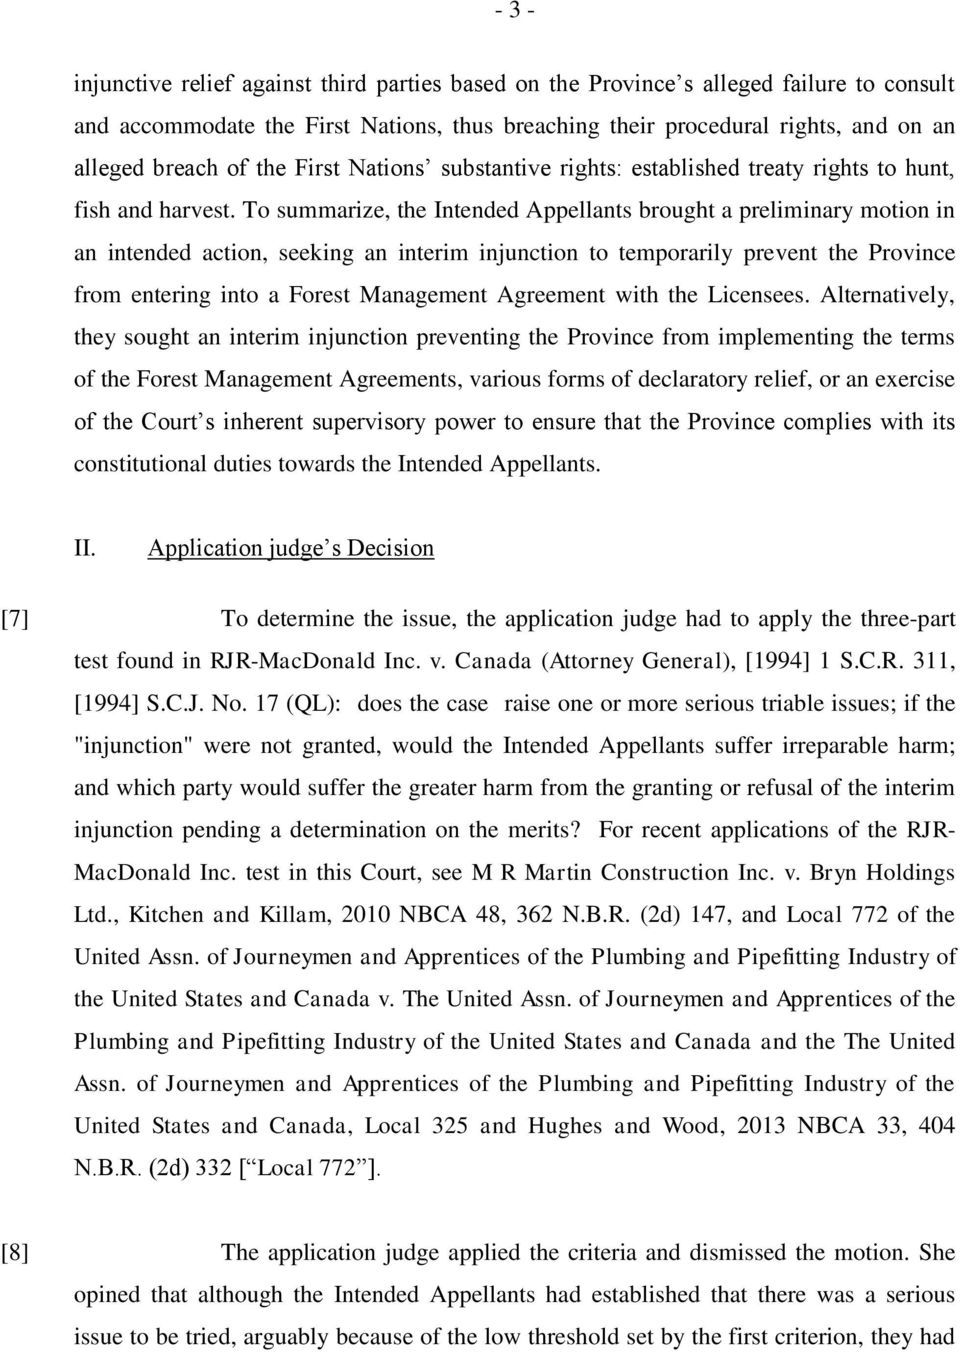 To summarize, the Intended Appellants brought a preliminary motion in an intended action, seeking an interim injunction to temporarily prevent the Province from entering into a Forest Management